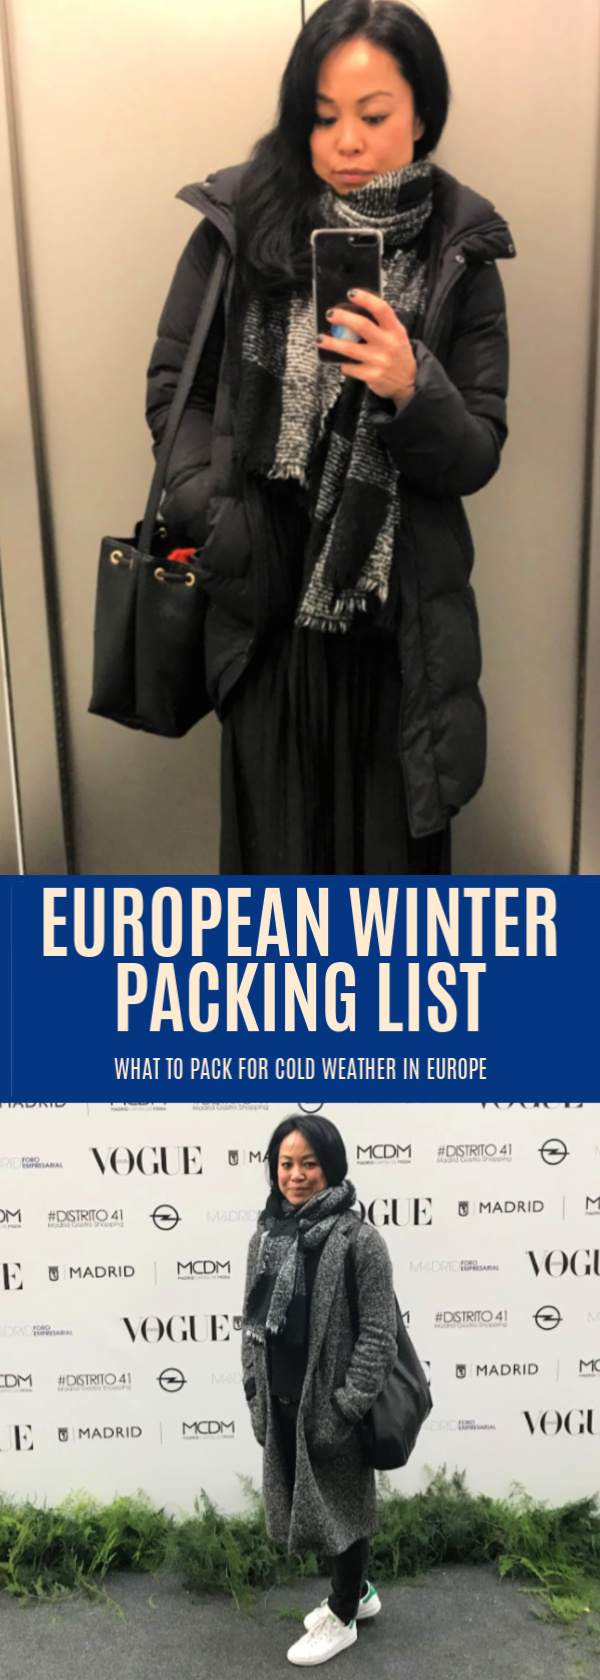 European Winter Packing List